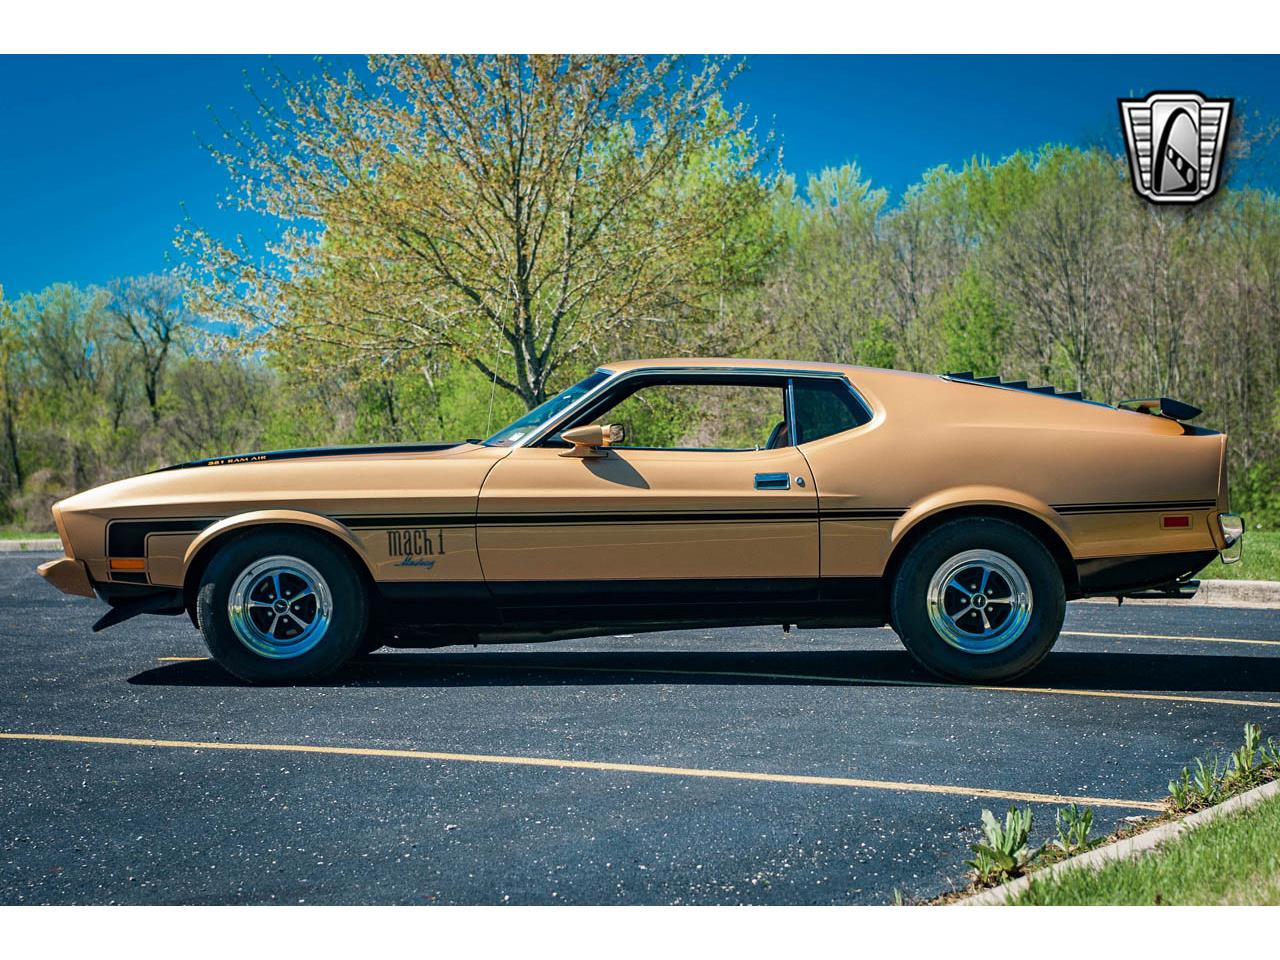 Large Picture of Classic 1973 Ford Mustang - $34,500.00 - QB8T